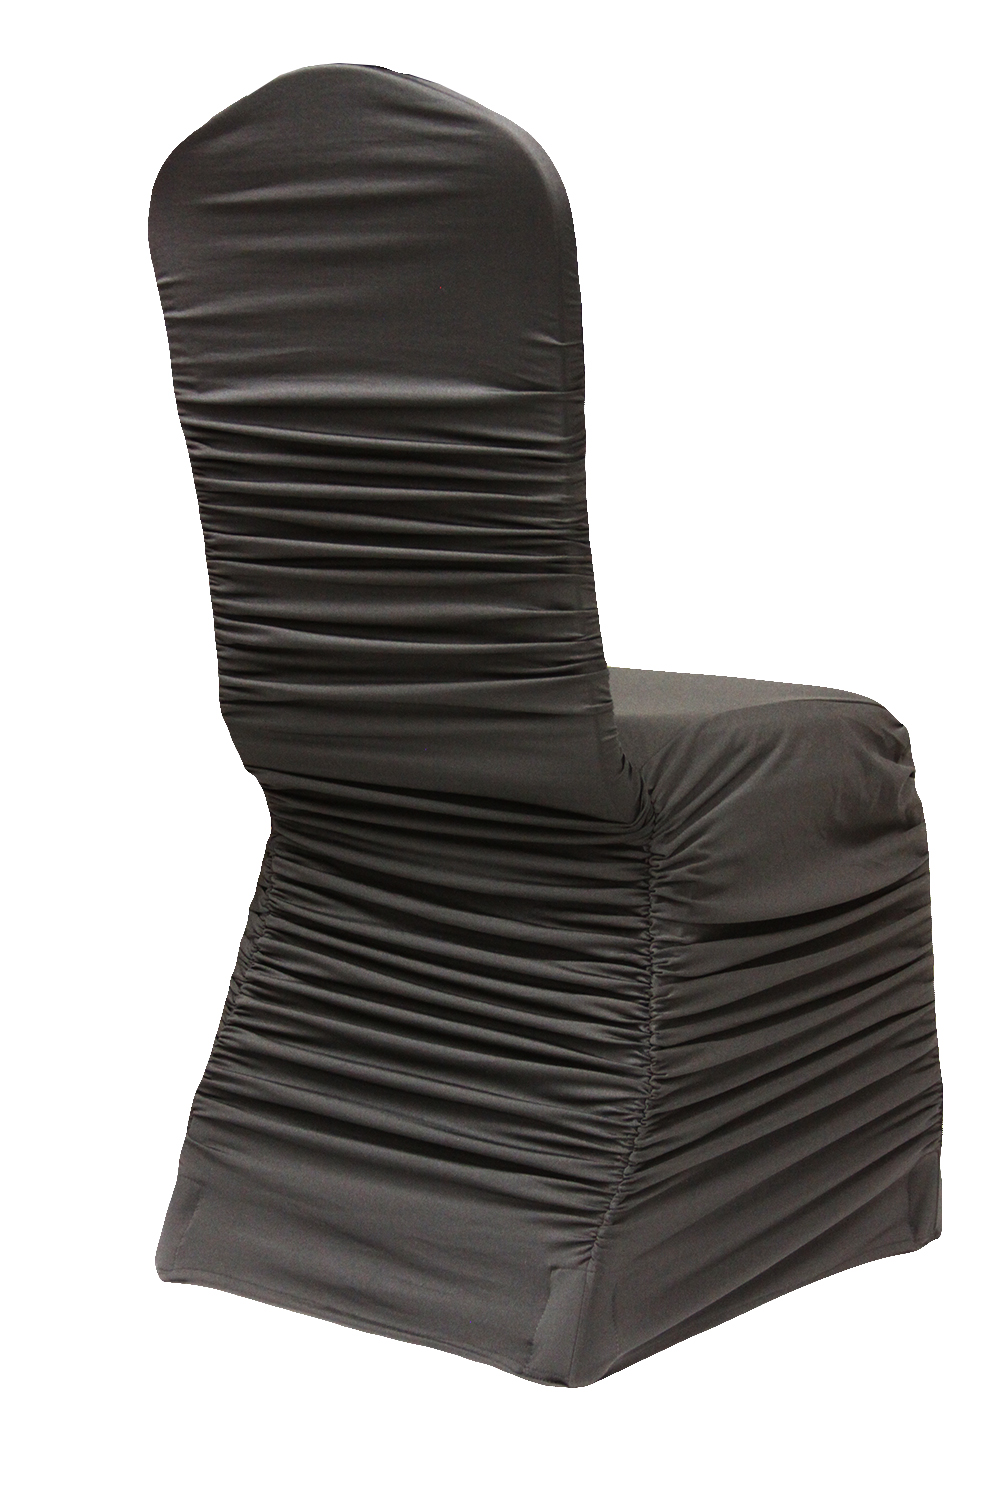 Black Ruched Chair Cover $5